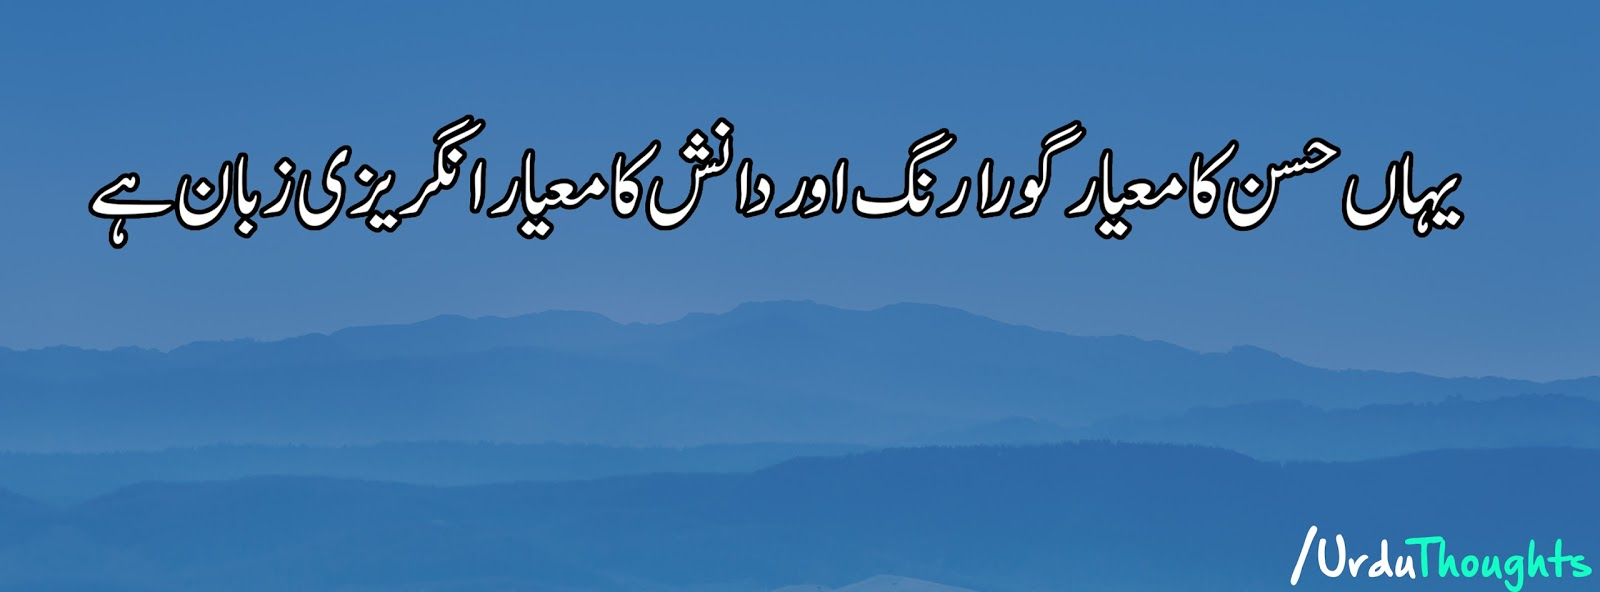 Facebook Cover Photos With Quotes Beautiful Urdu Quotes Cover Photos  Urdu Facebook Cover  Urdu